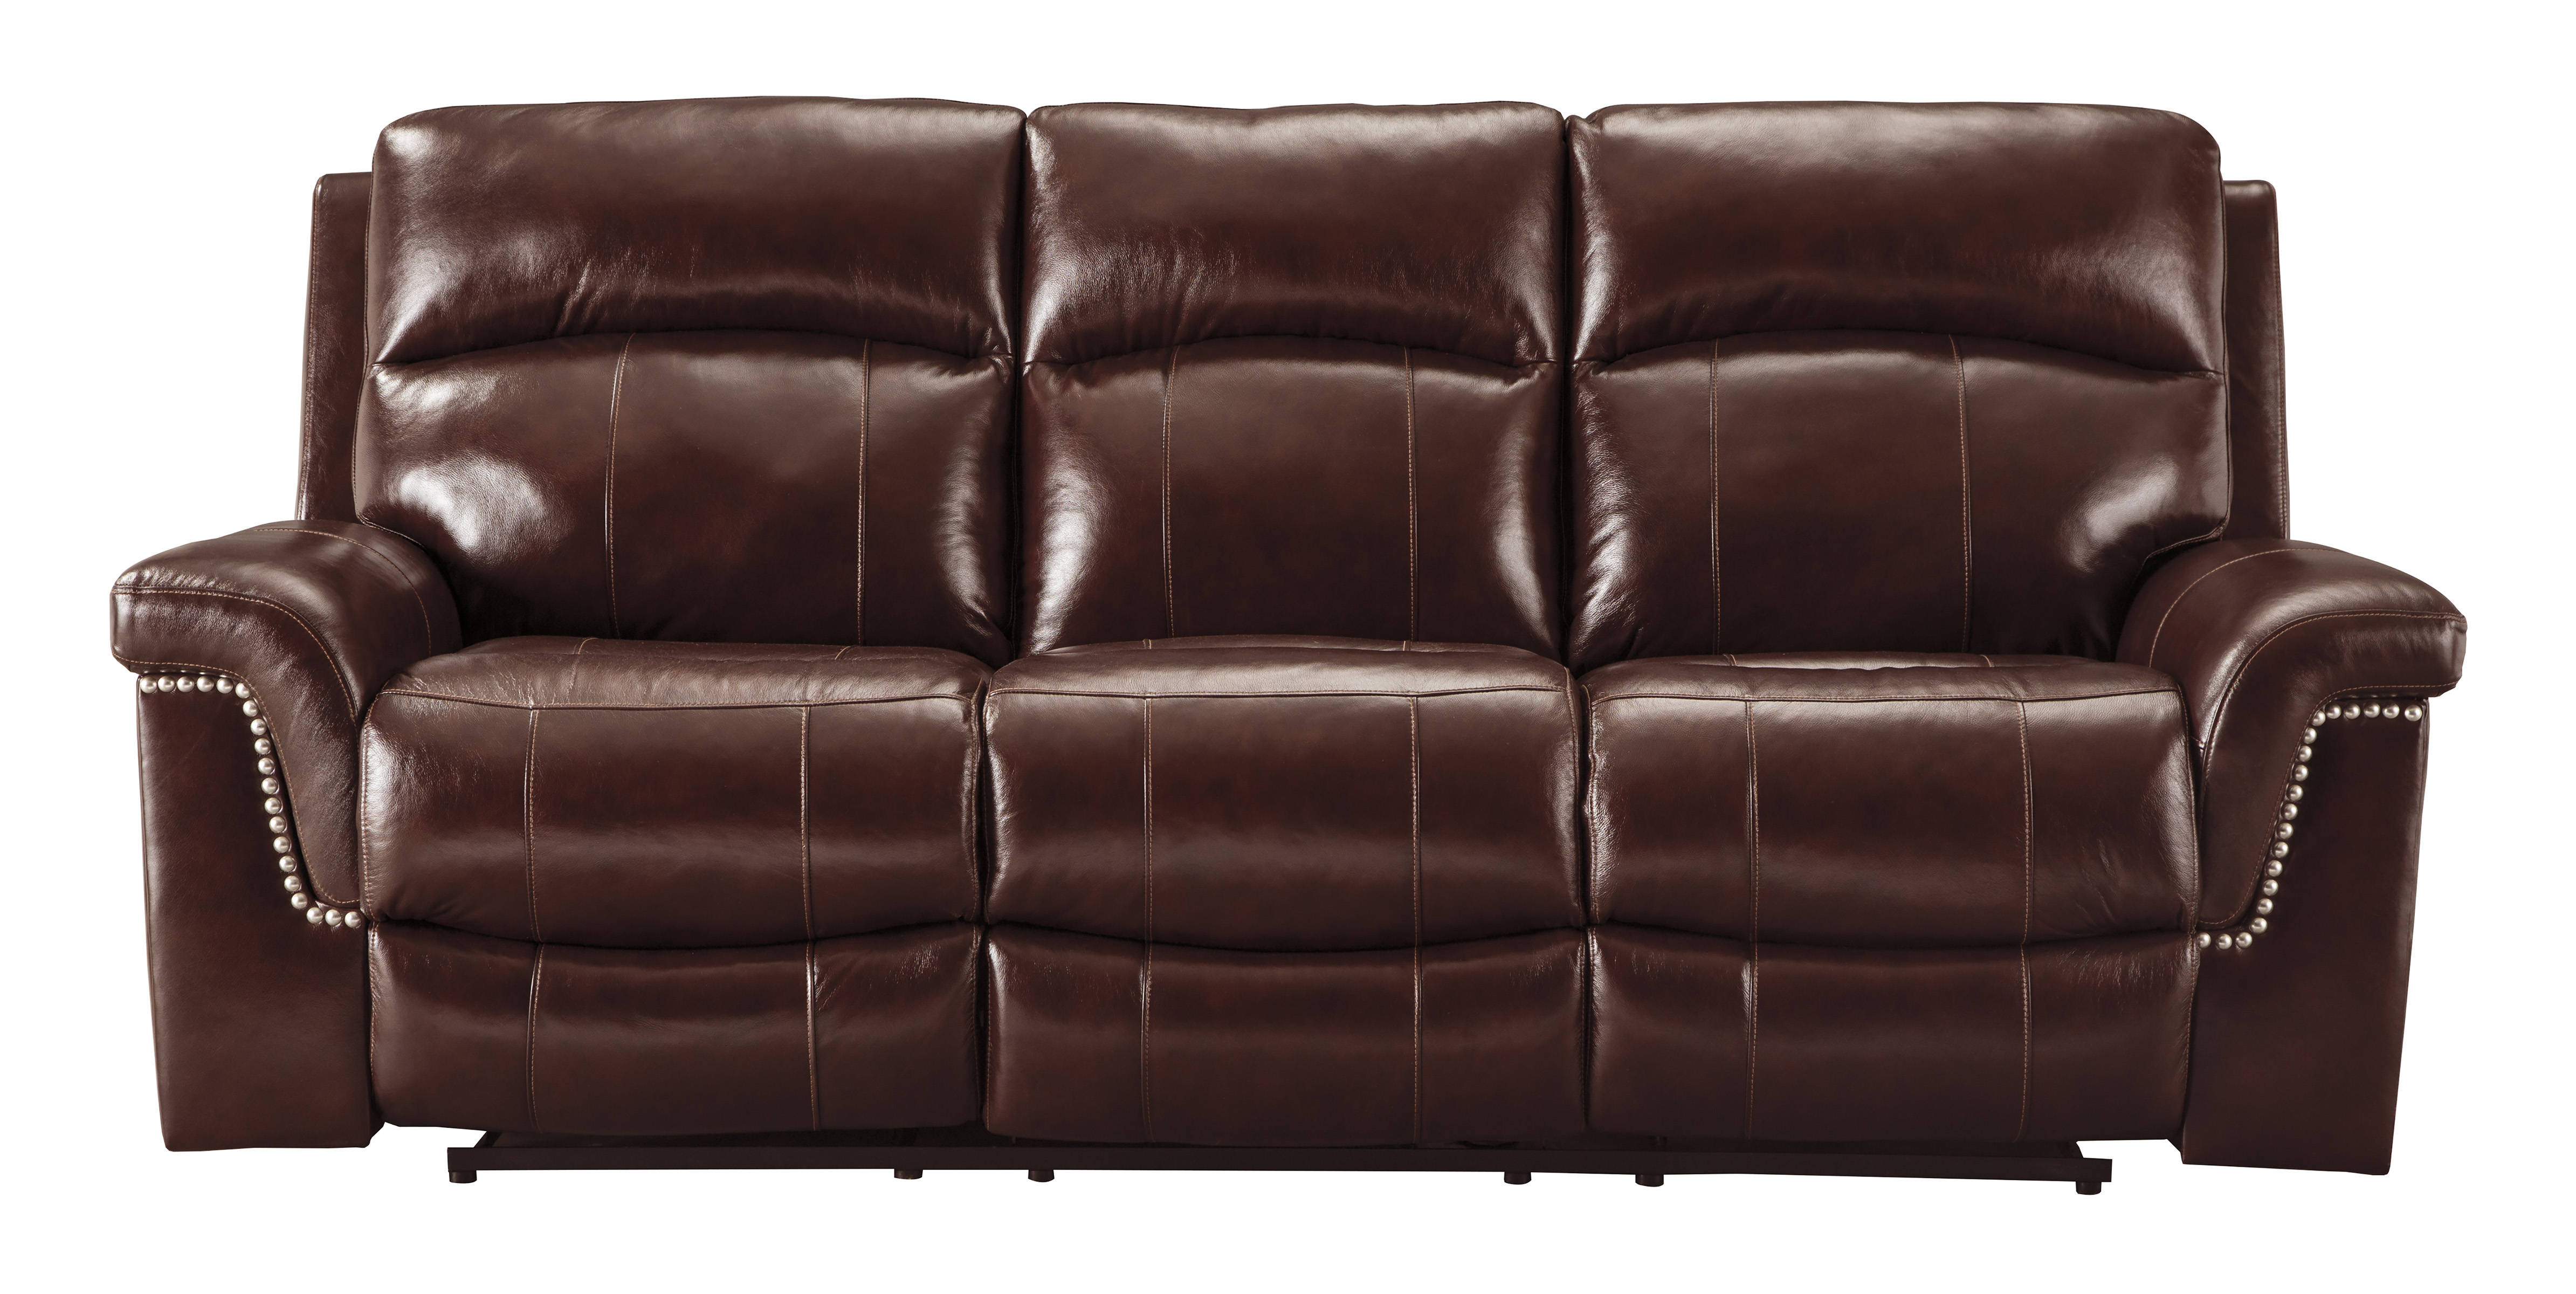 Ashley Furniture Timmons Burgundy Reclining Sofa Click To Enlarge